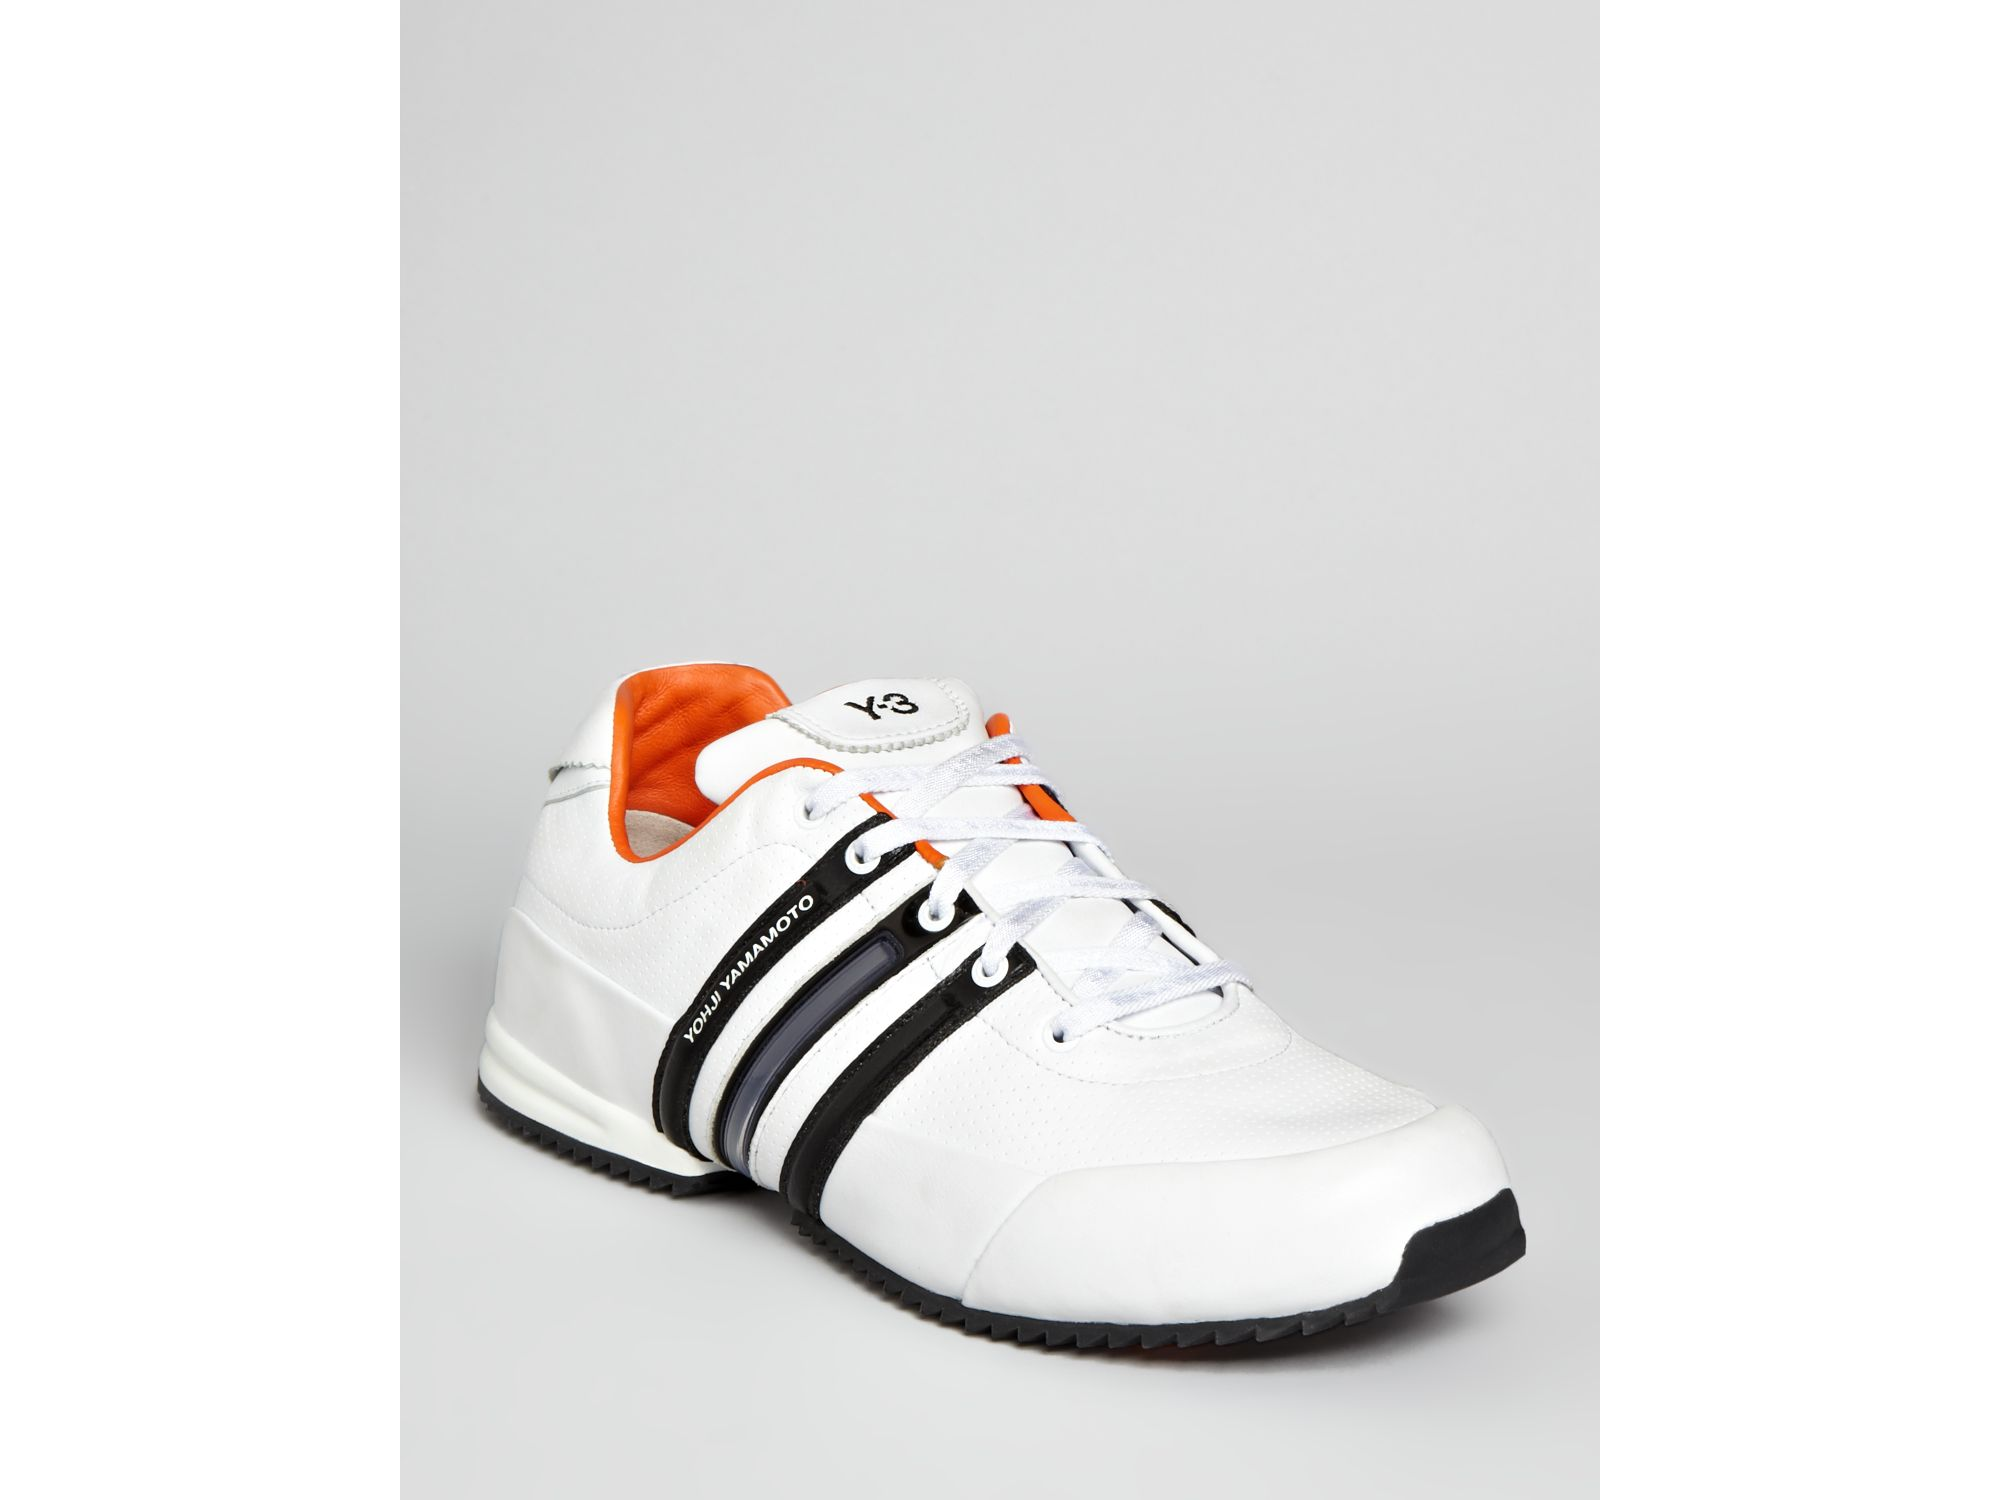 Y 3 Sprint Classic Sneakers in White Black Orange (White